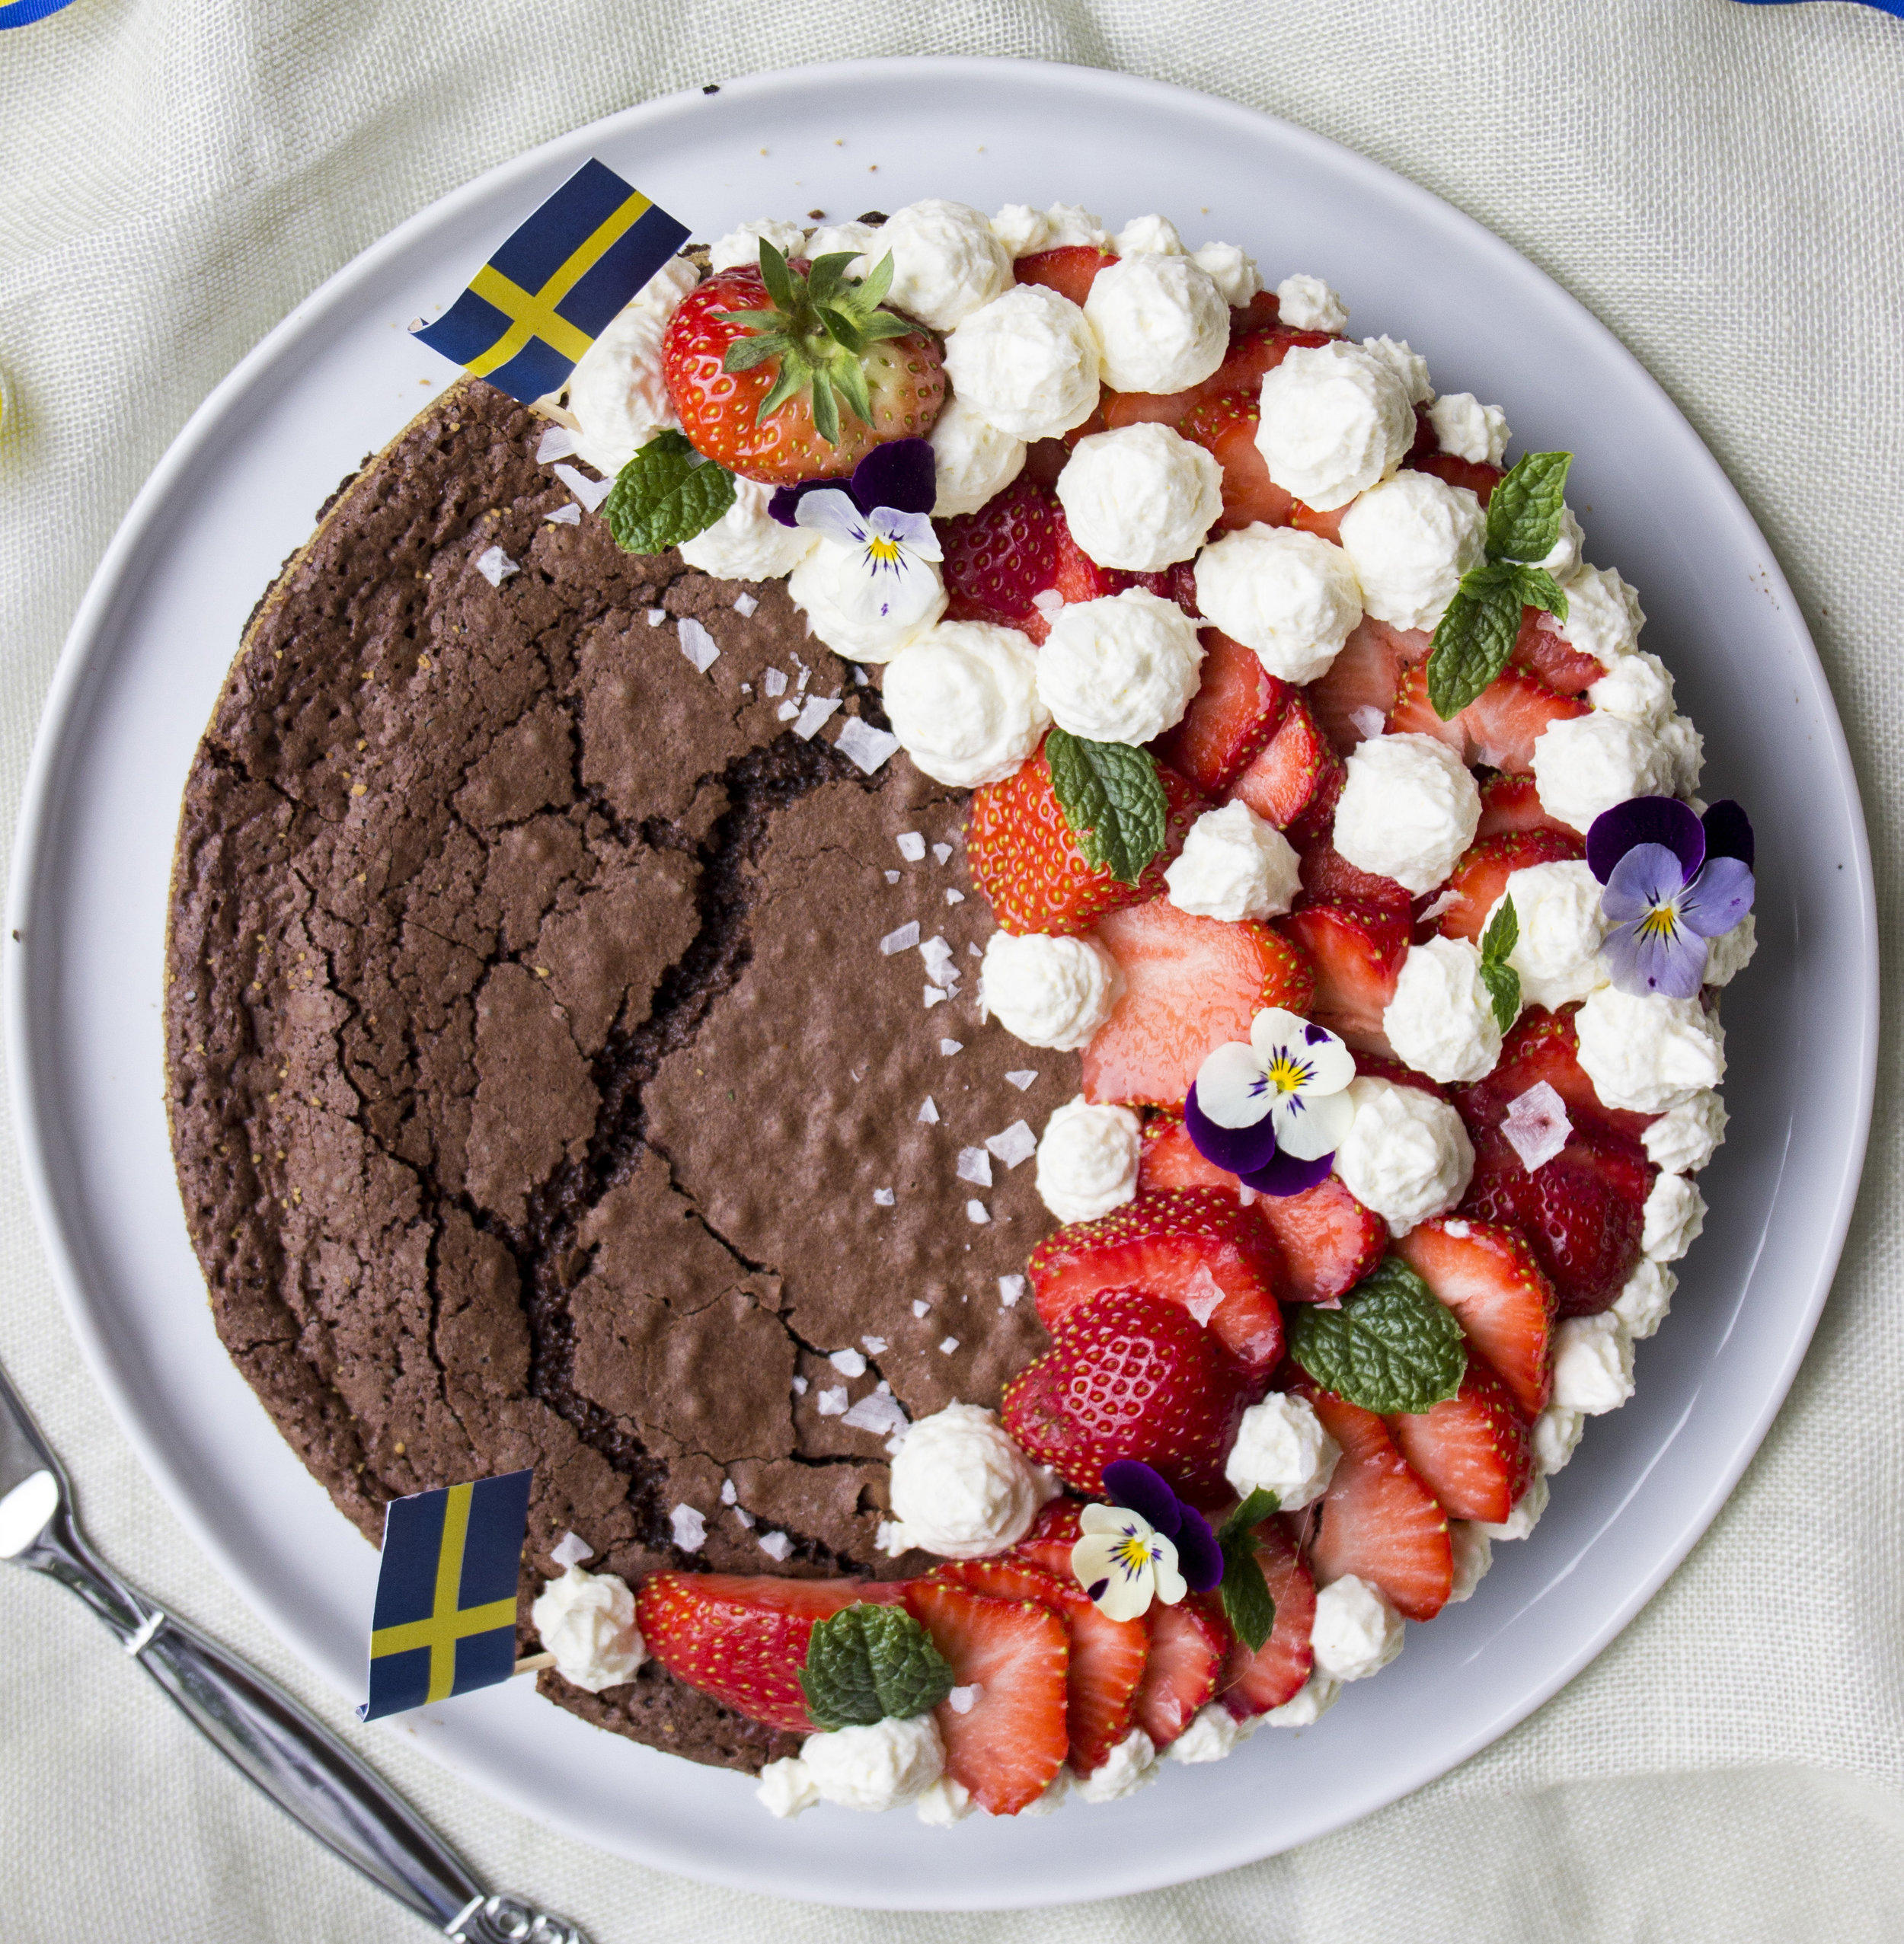 Swedish Sticky Chocolate Cake    A little sweet, a little salty, just a touch of naughty. Try Swedish sticky chocolate cake is a twist to brighten up your chocolate and strawberry cravings.